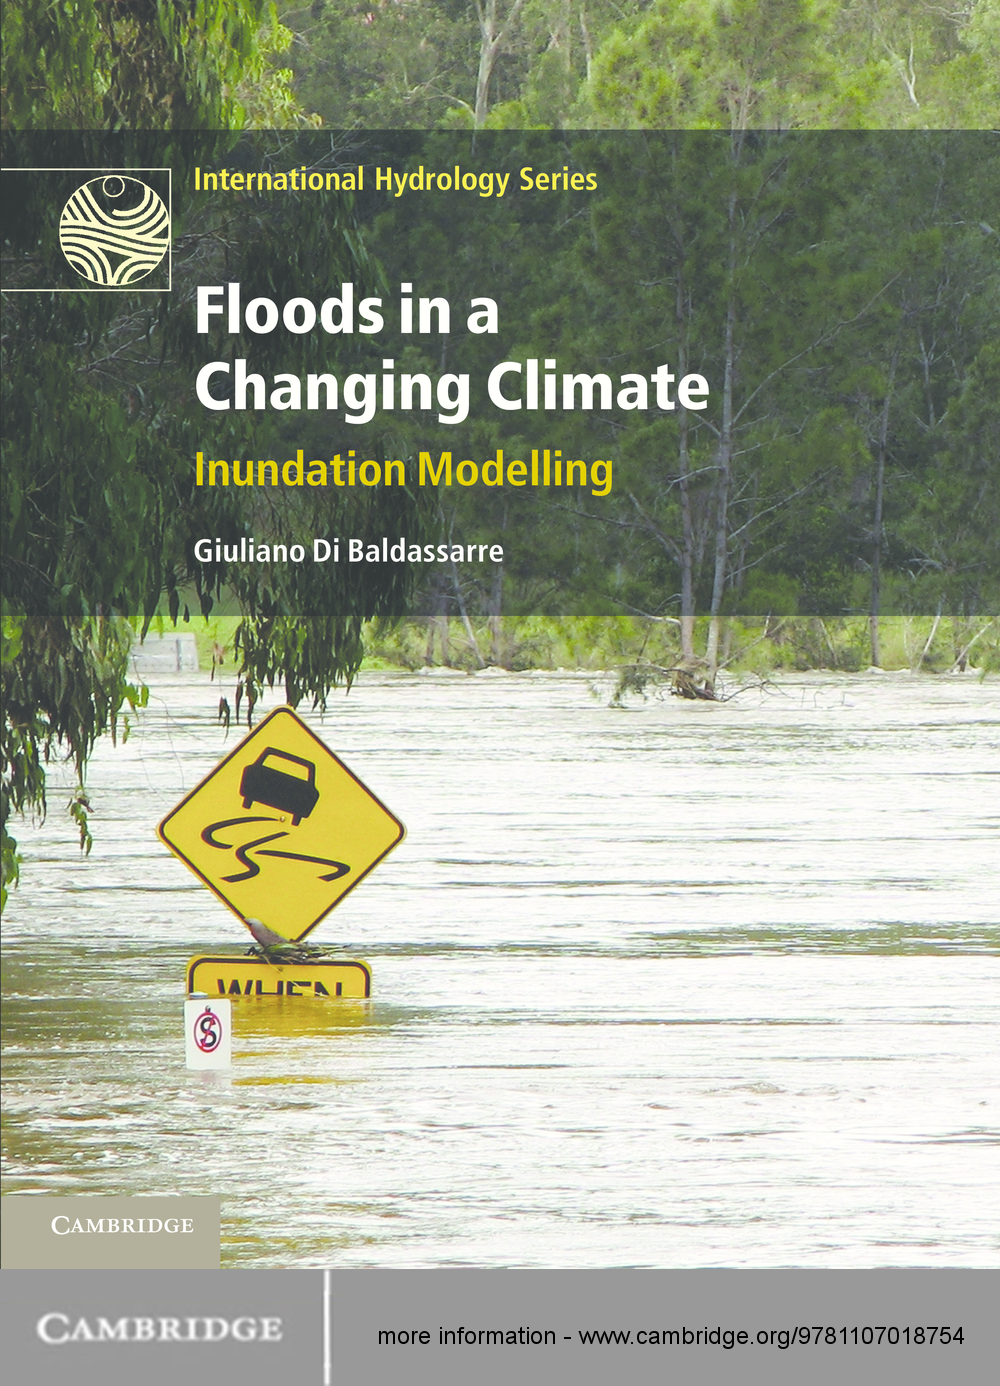 Floods in a Changing Climate Inundation Modelling